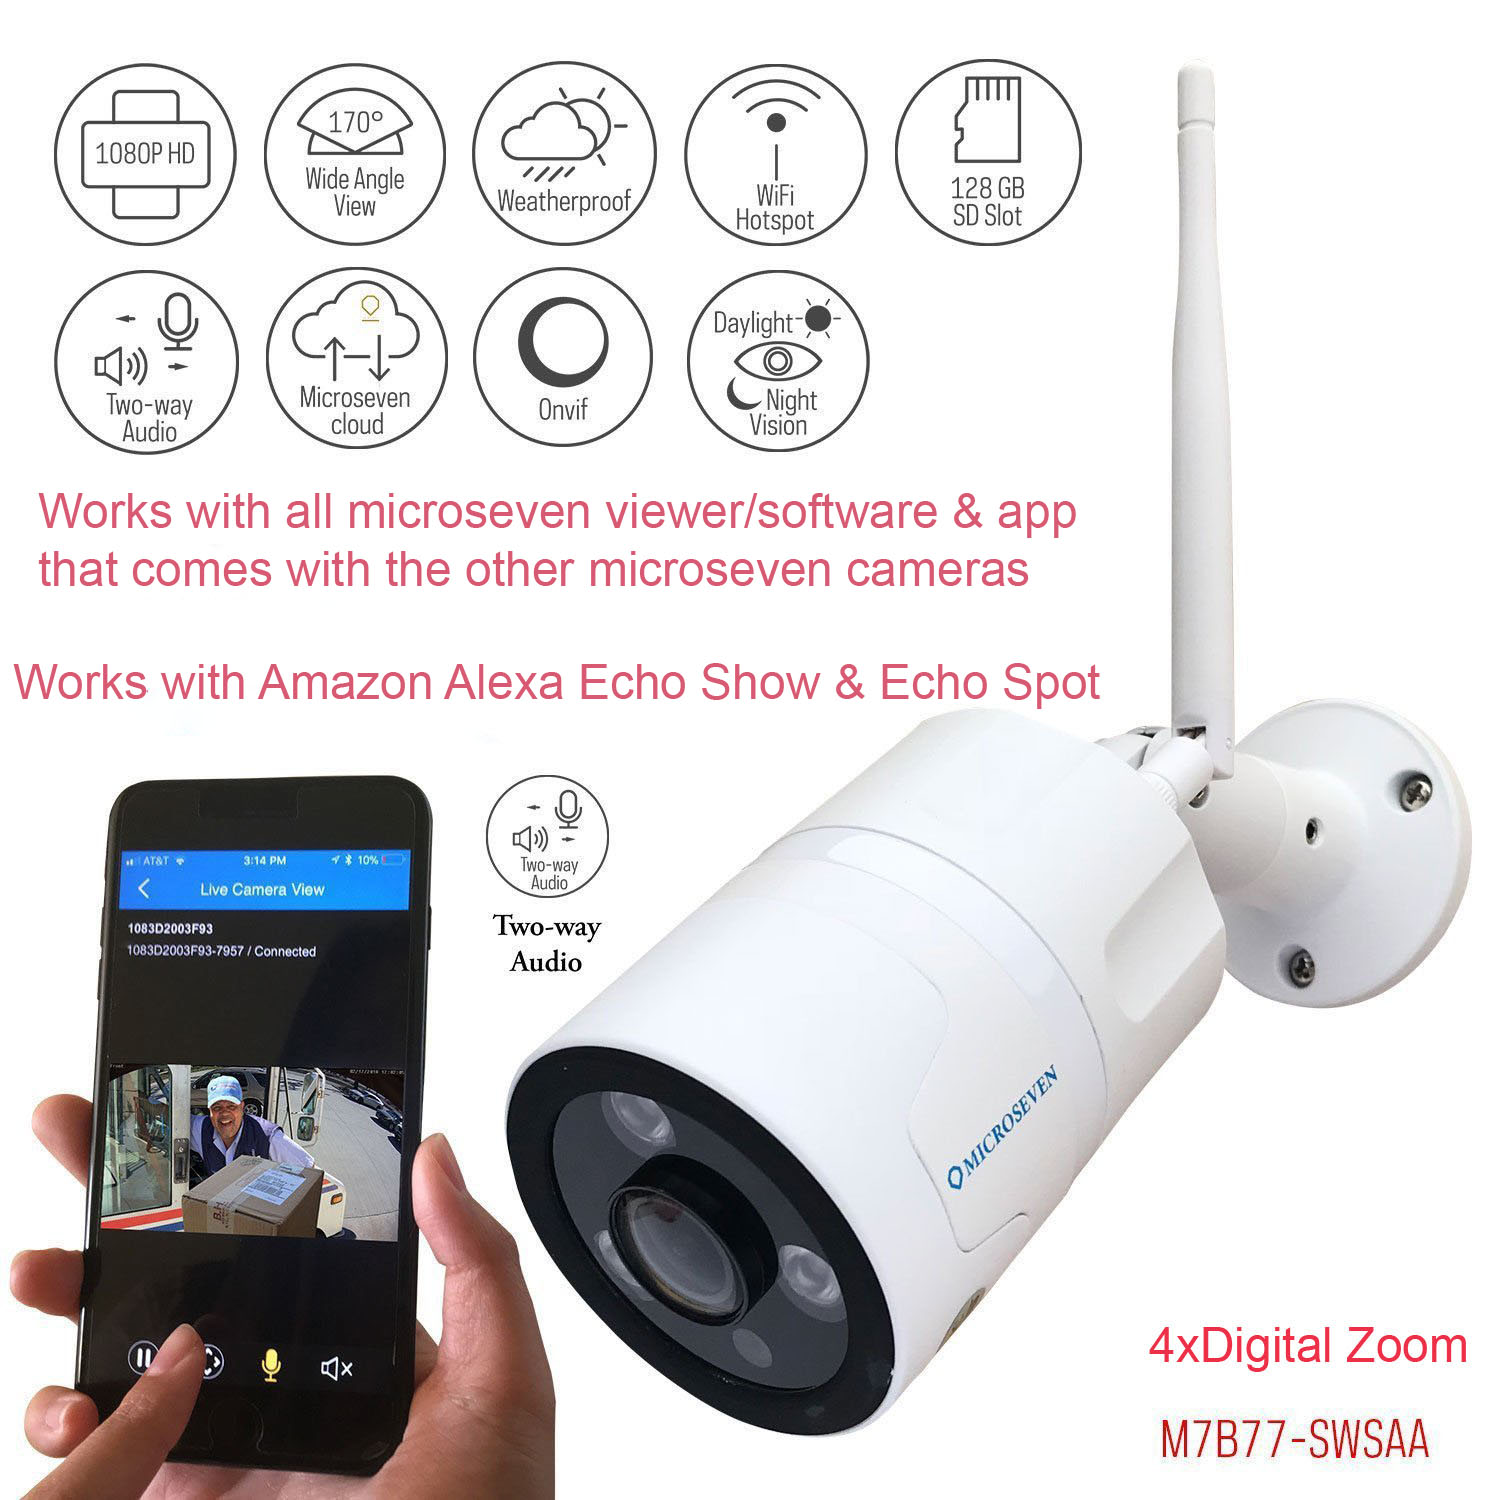 Microseven HD Works with Alexa, Free 24Hr Cloud , 2-Way Talk 1080P WiFi Wide Angle (170°) Outdoor IP Camera, SONY CMOS Built-in Microphone & Speaker +128GB SD Slot, Day & Night, ONVIF, Free Live Streaming microseven.tv